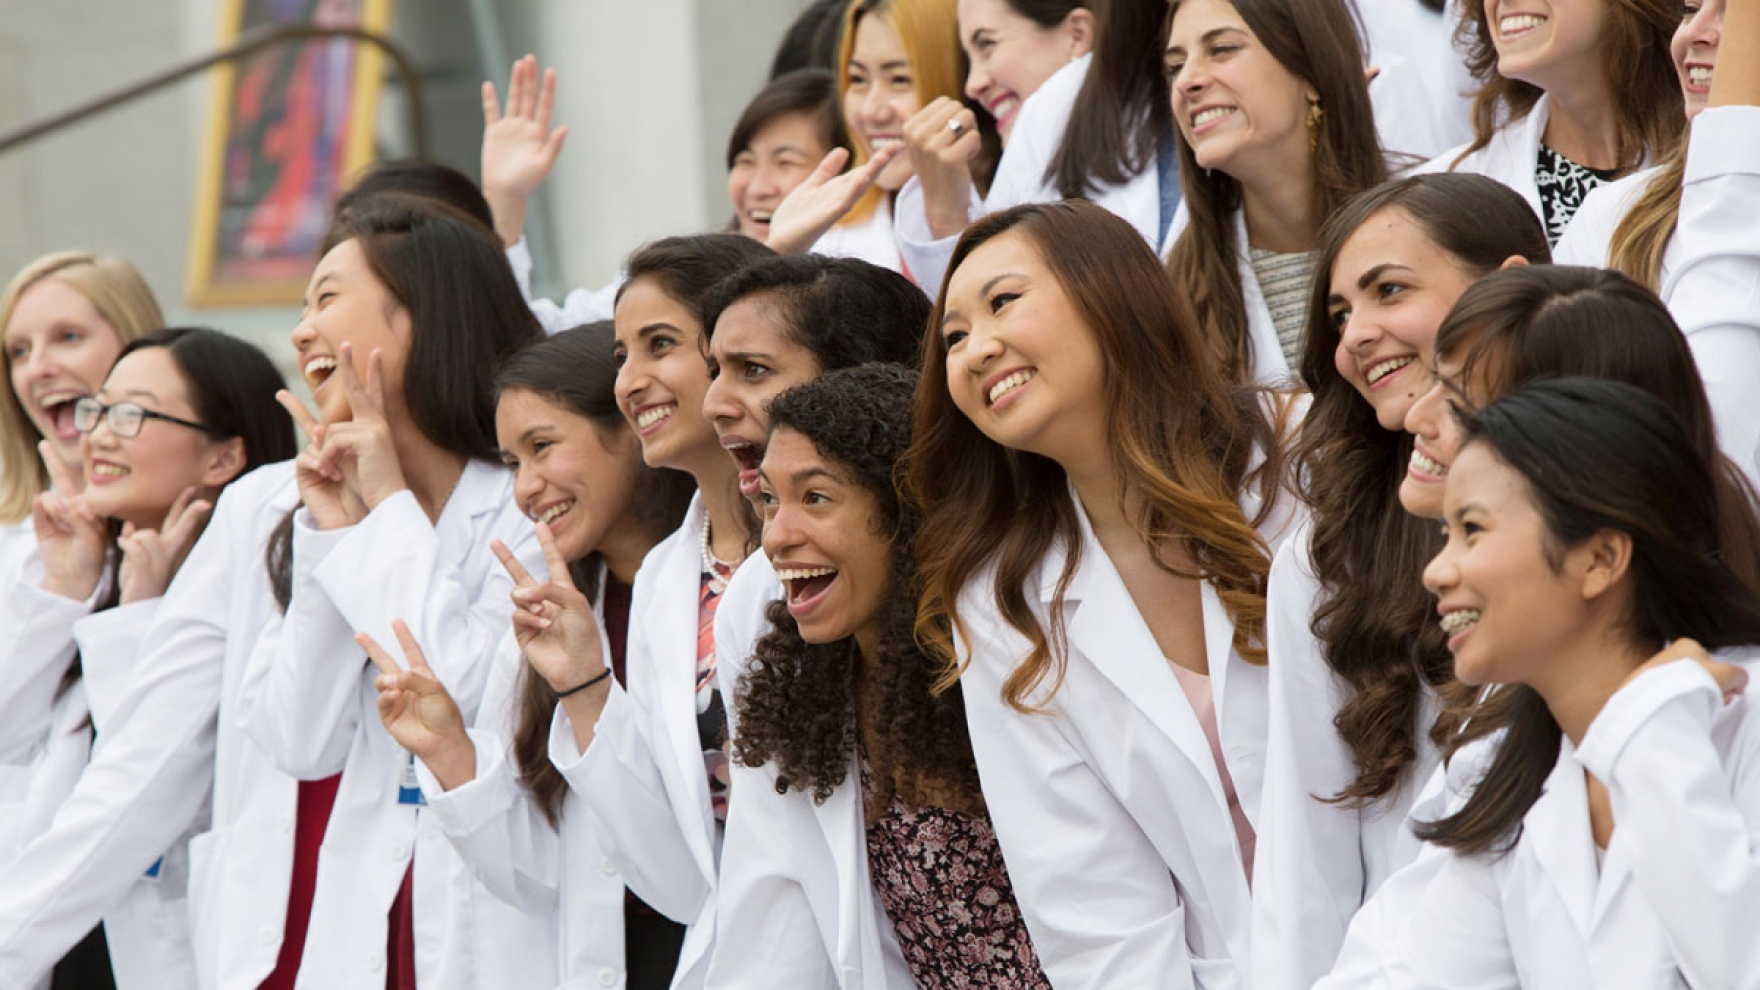 UCSF medical students gather for a photo